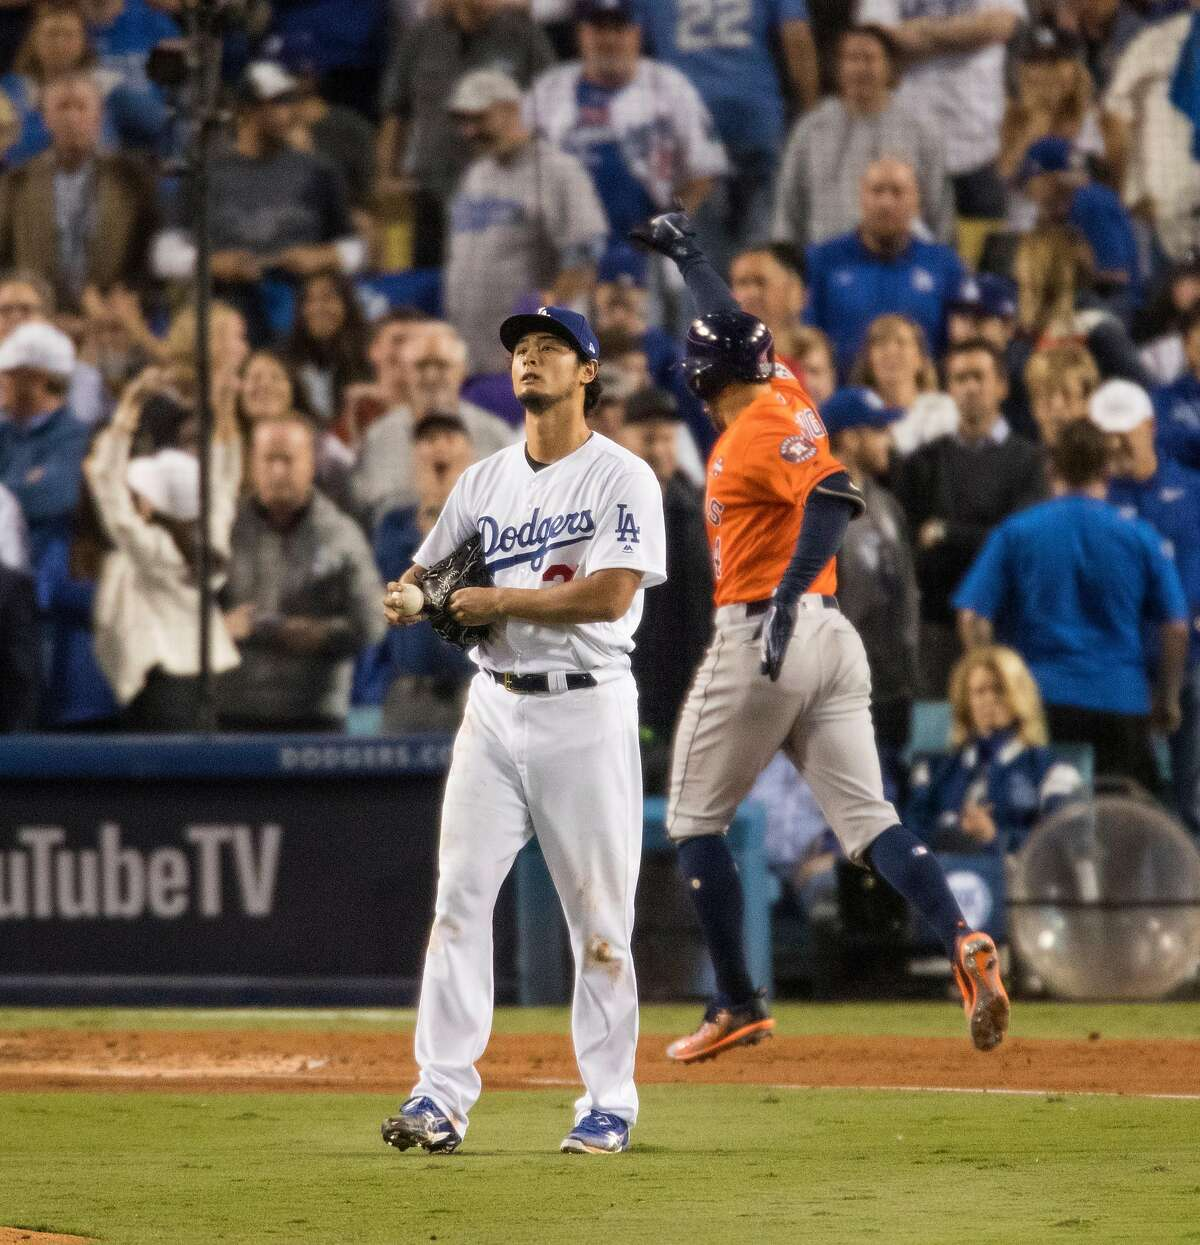 Los Angeles Dodgers starting pitcher Yu Darvish stares into the outfield as the Houston Astros' George Springer reaches home plate after hitting a two-run home run in the second inning during Game 7 of the World Series at Dodger Stadium in Los Angeles on Wednesday, Nov. 1, 2017. (Gina Ferazzi/Los Angeles Times/TNS)